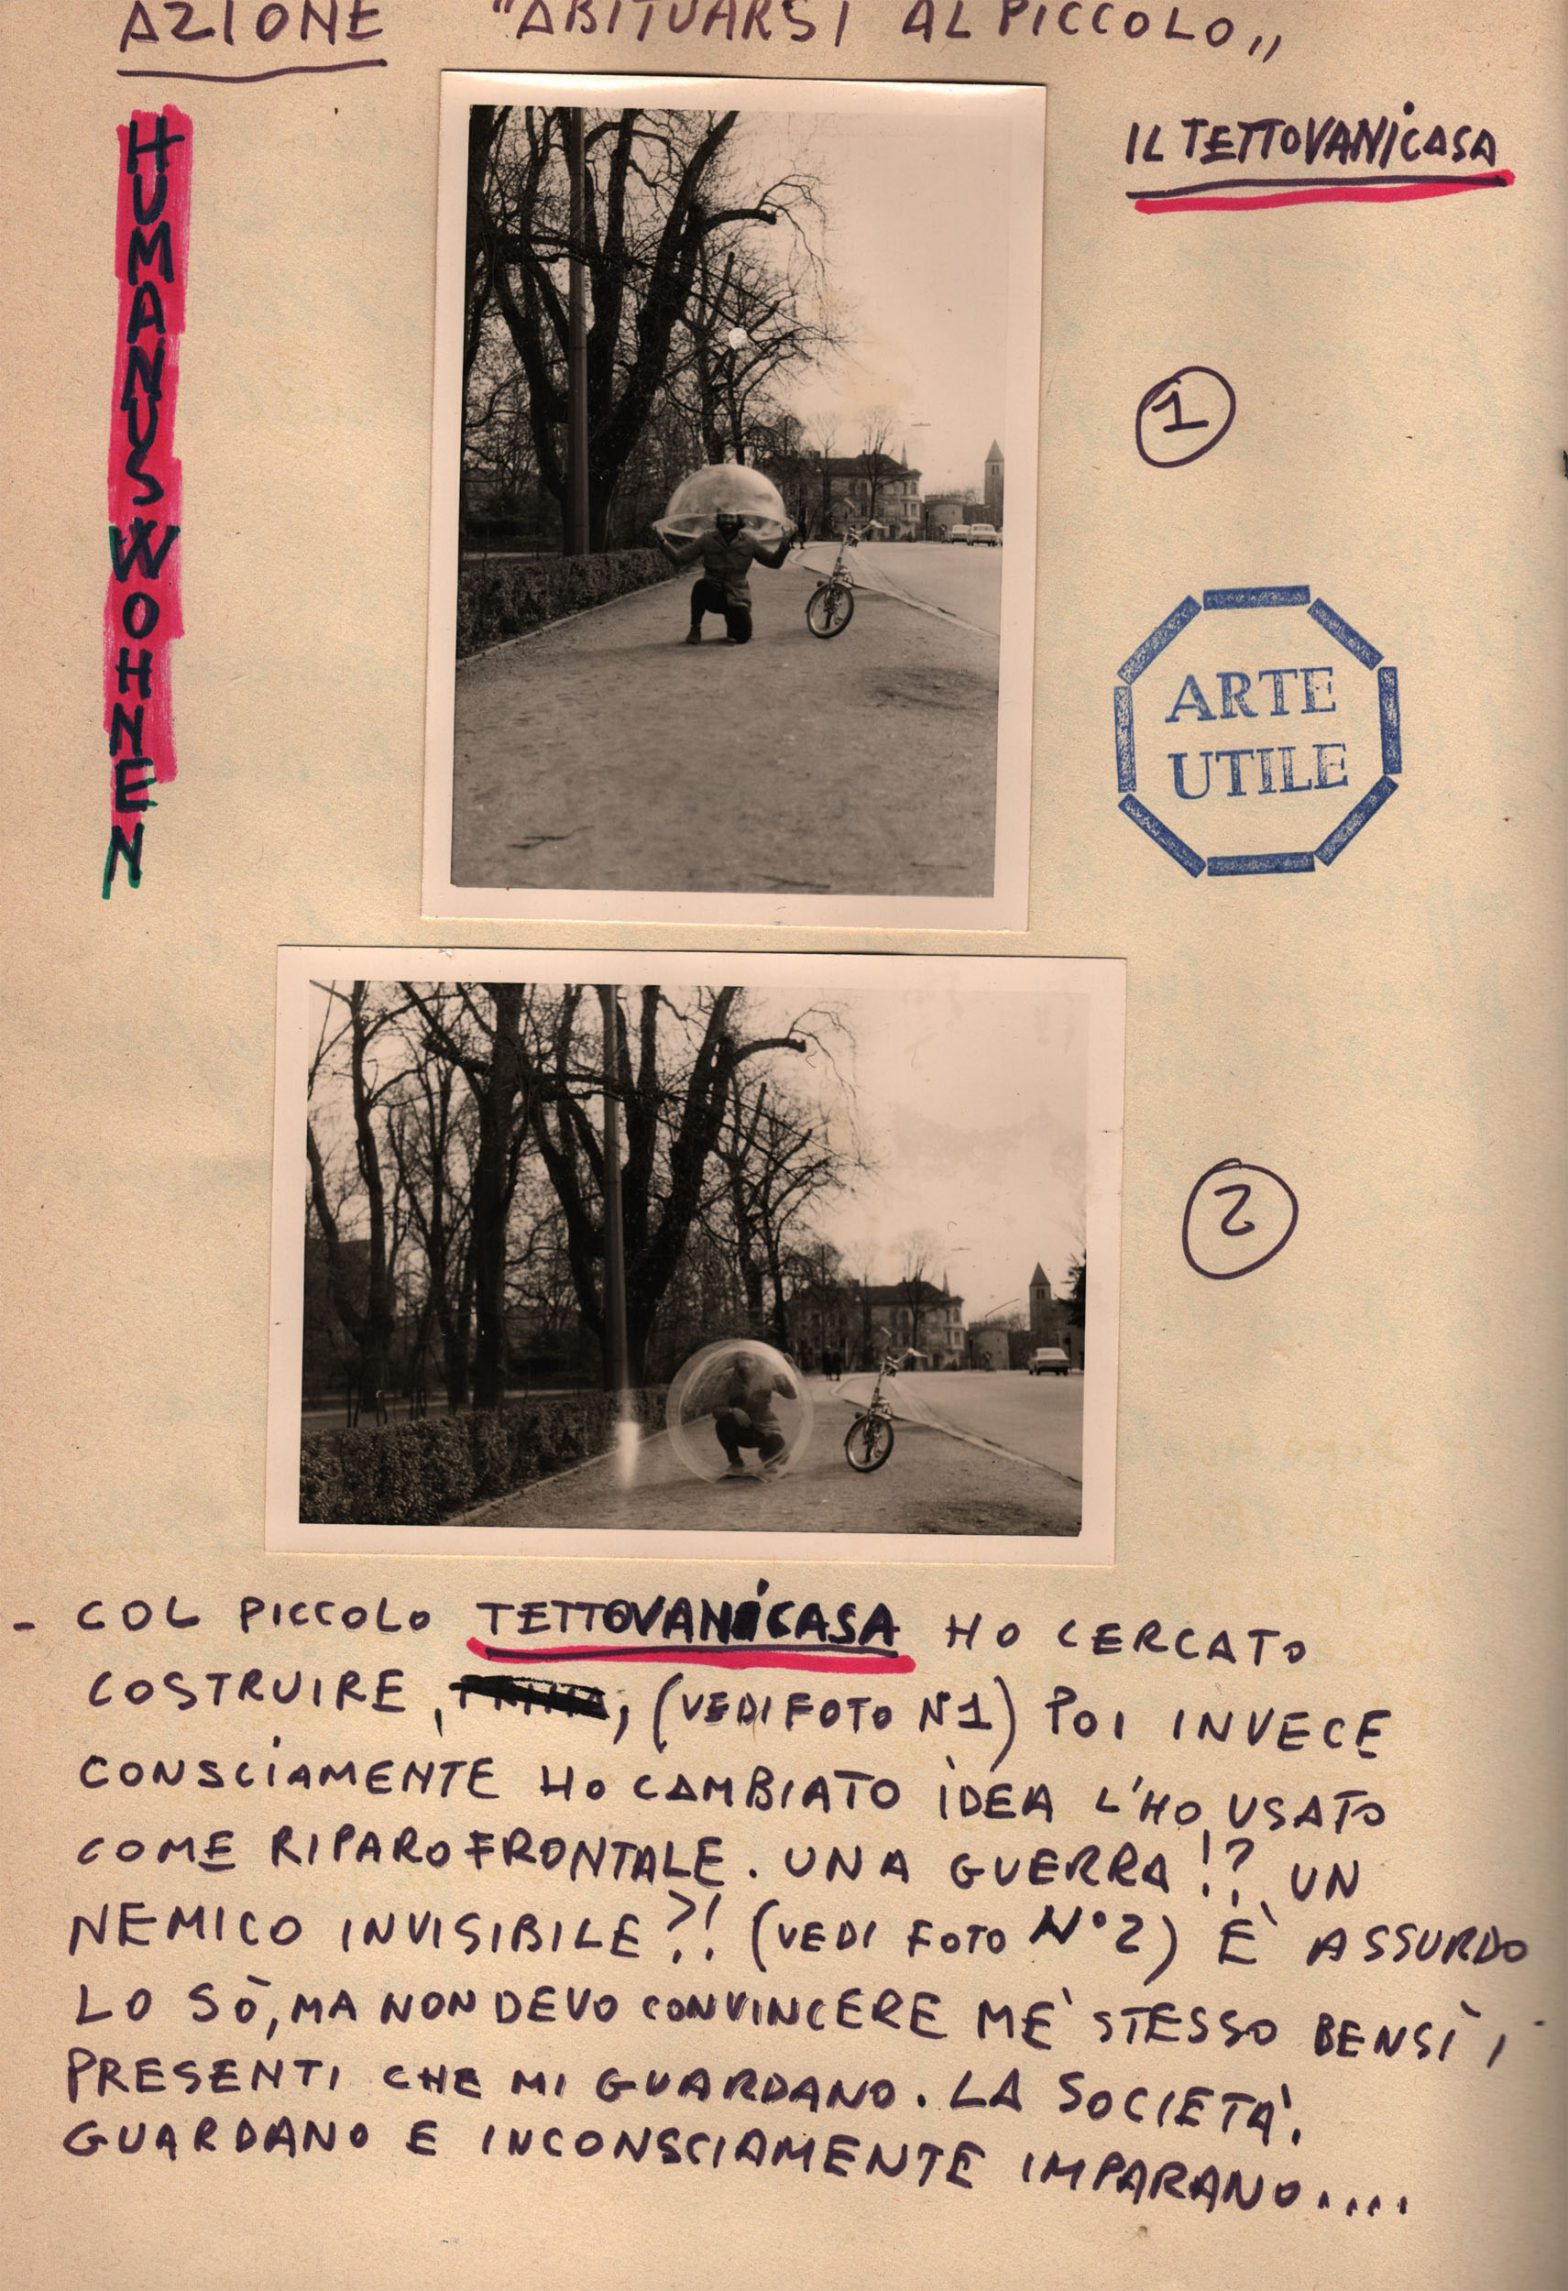 Page showing b/w photographs and handwritten text.